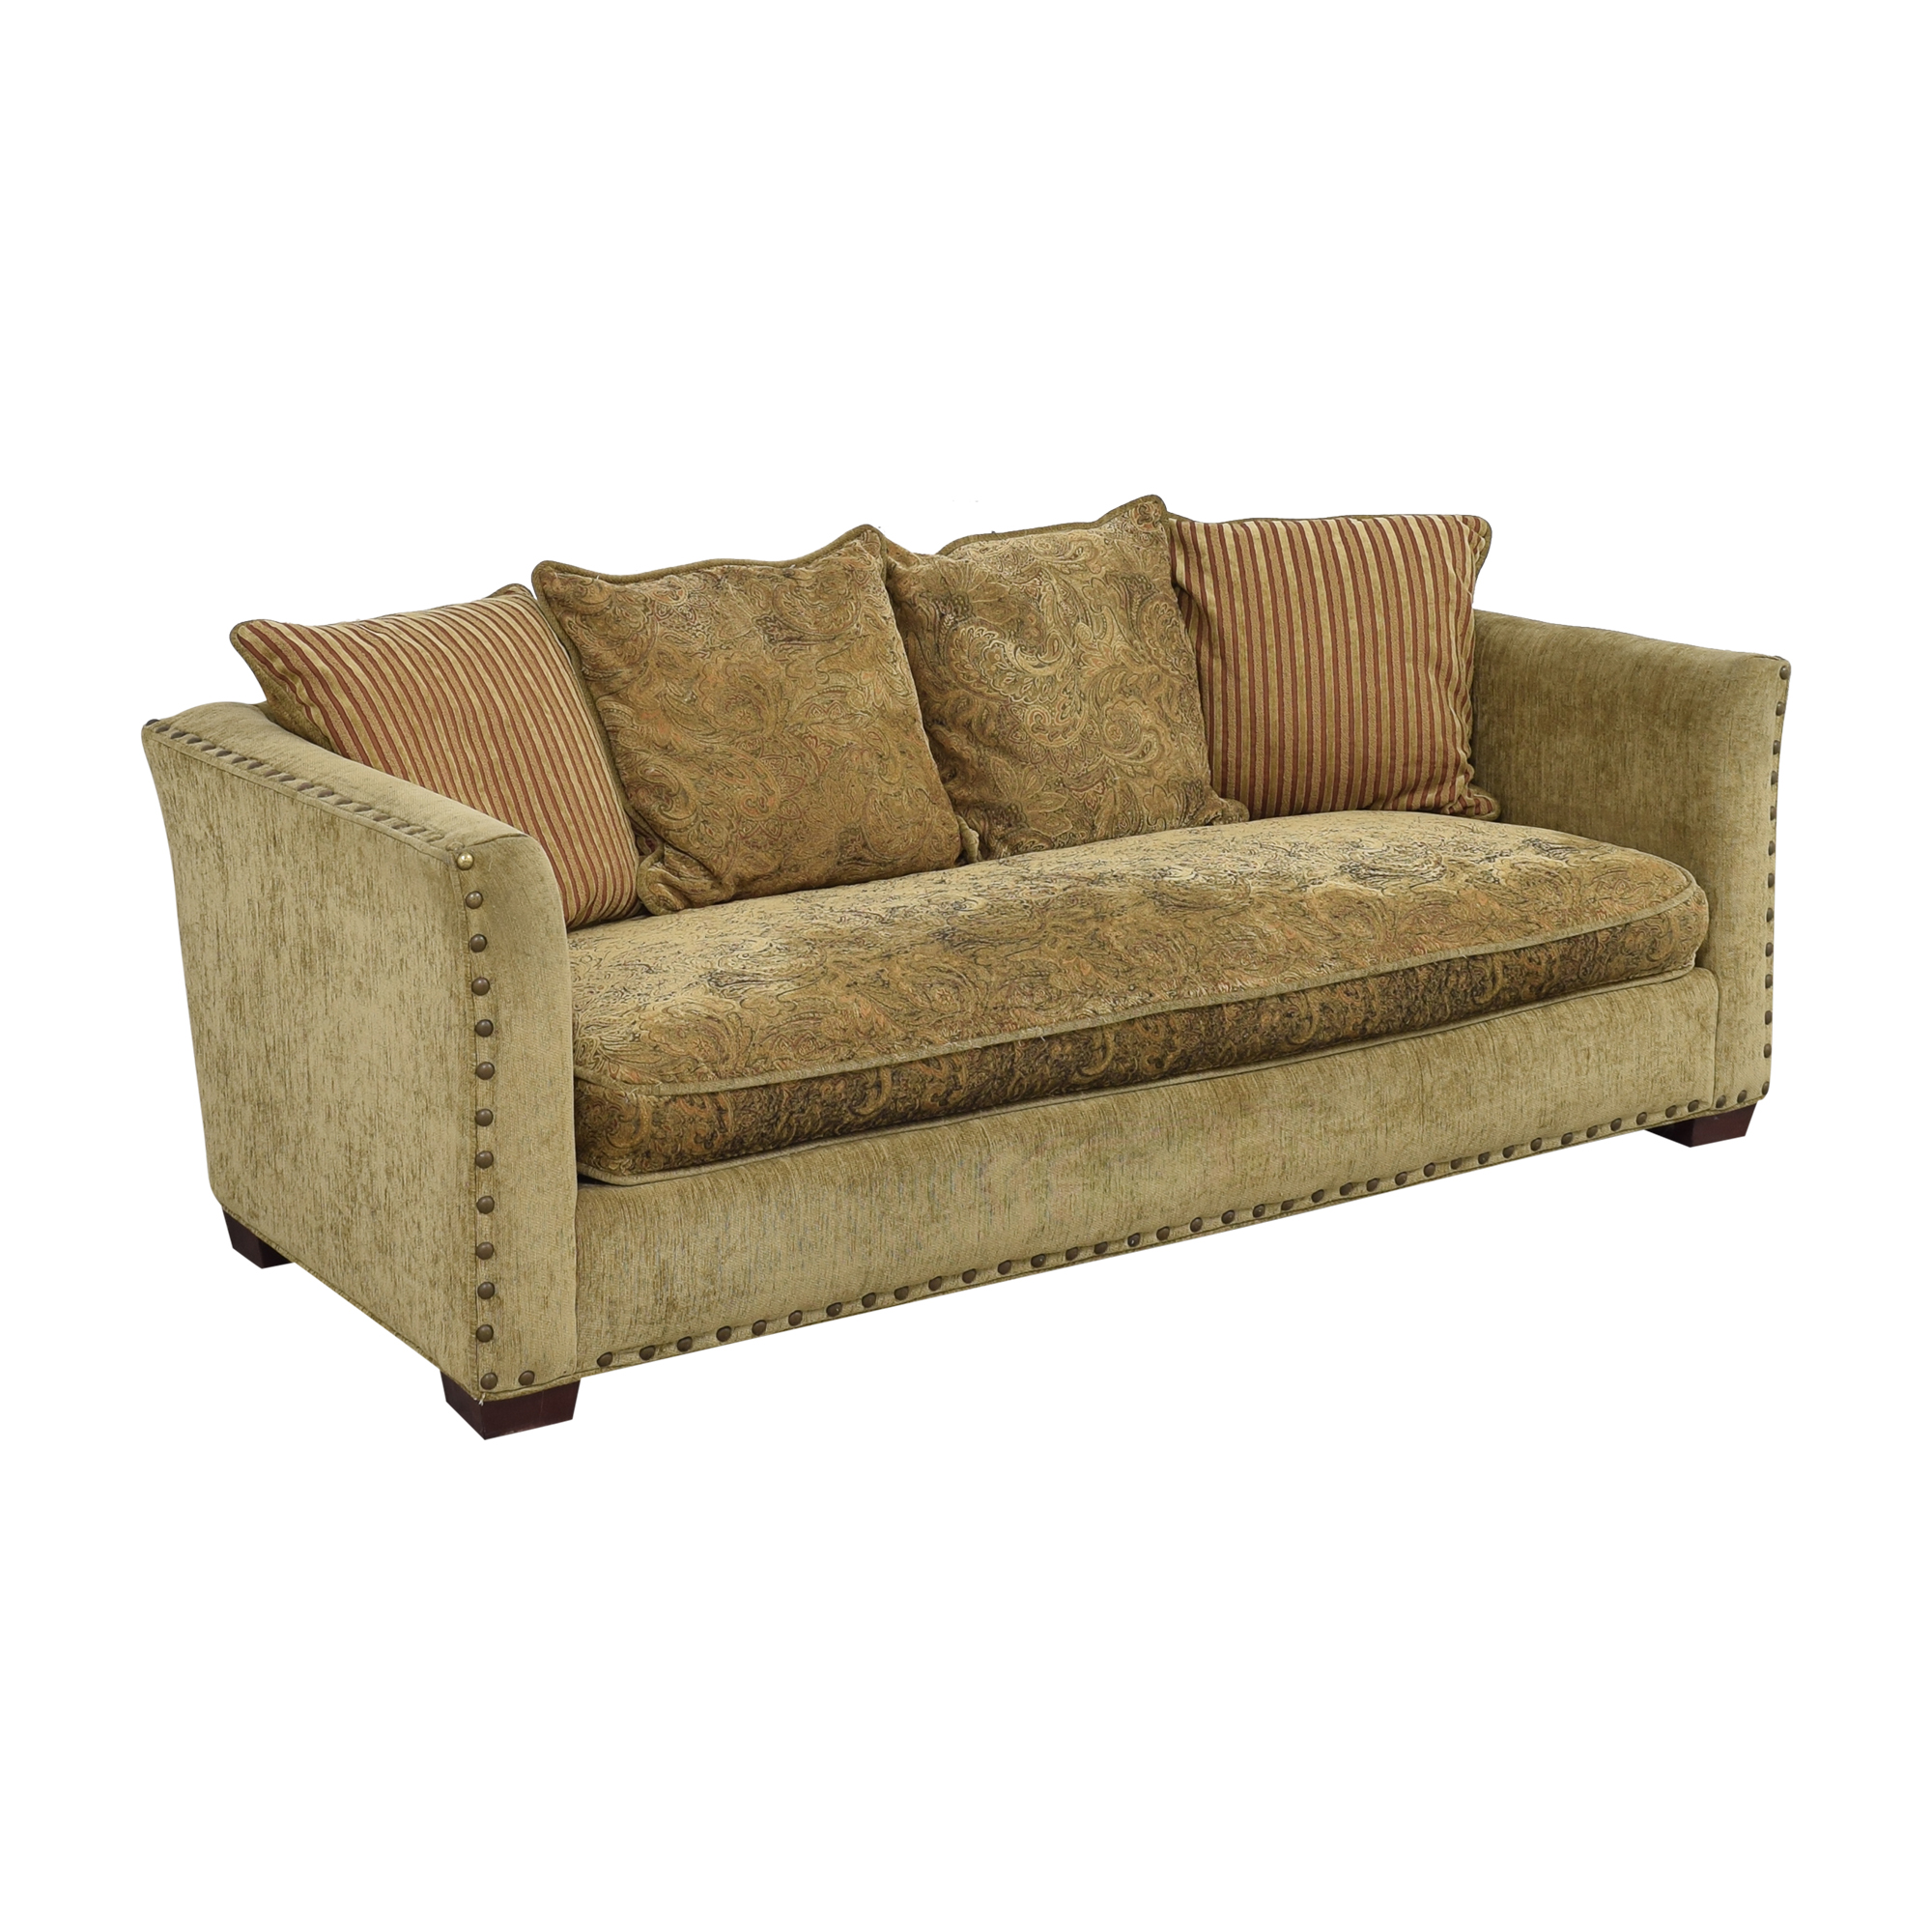 Robin Bruce Bench Cushion Sofa / Classic Sofas